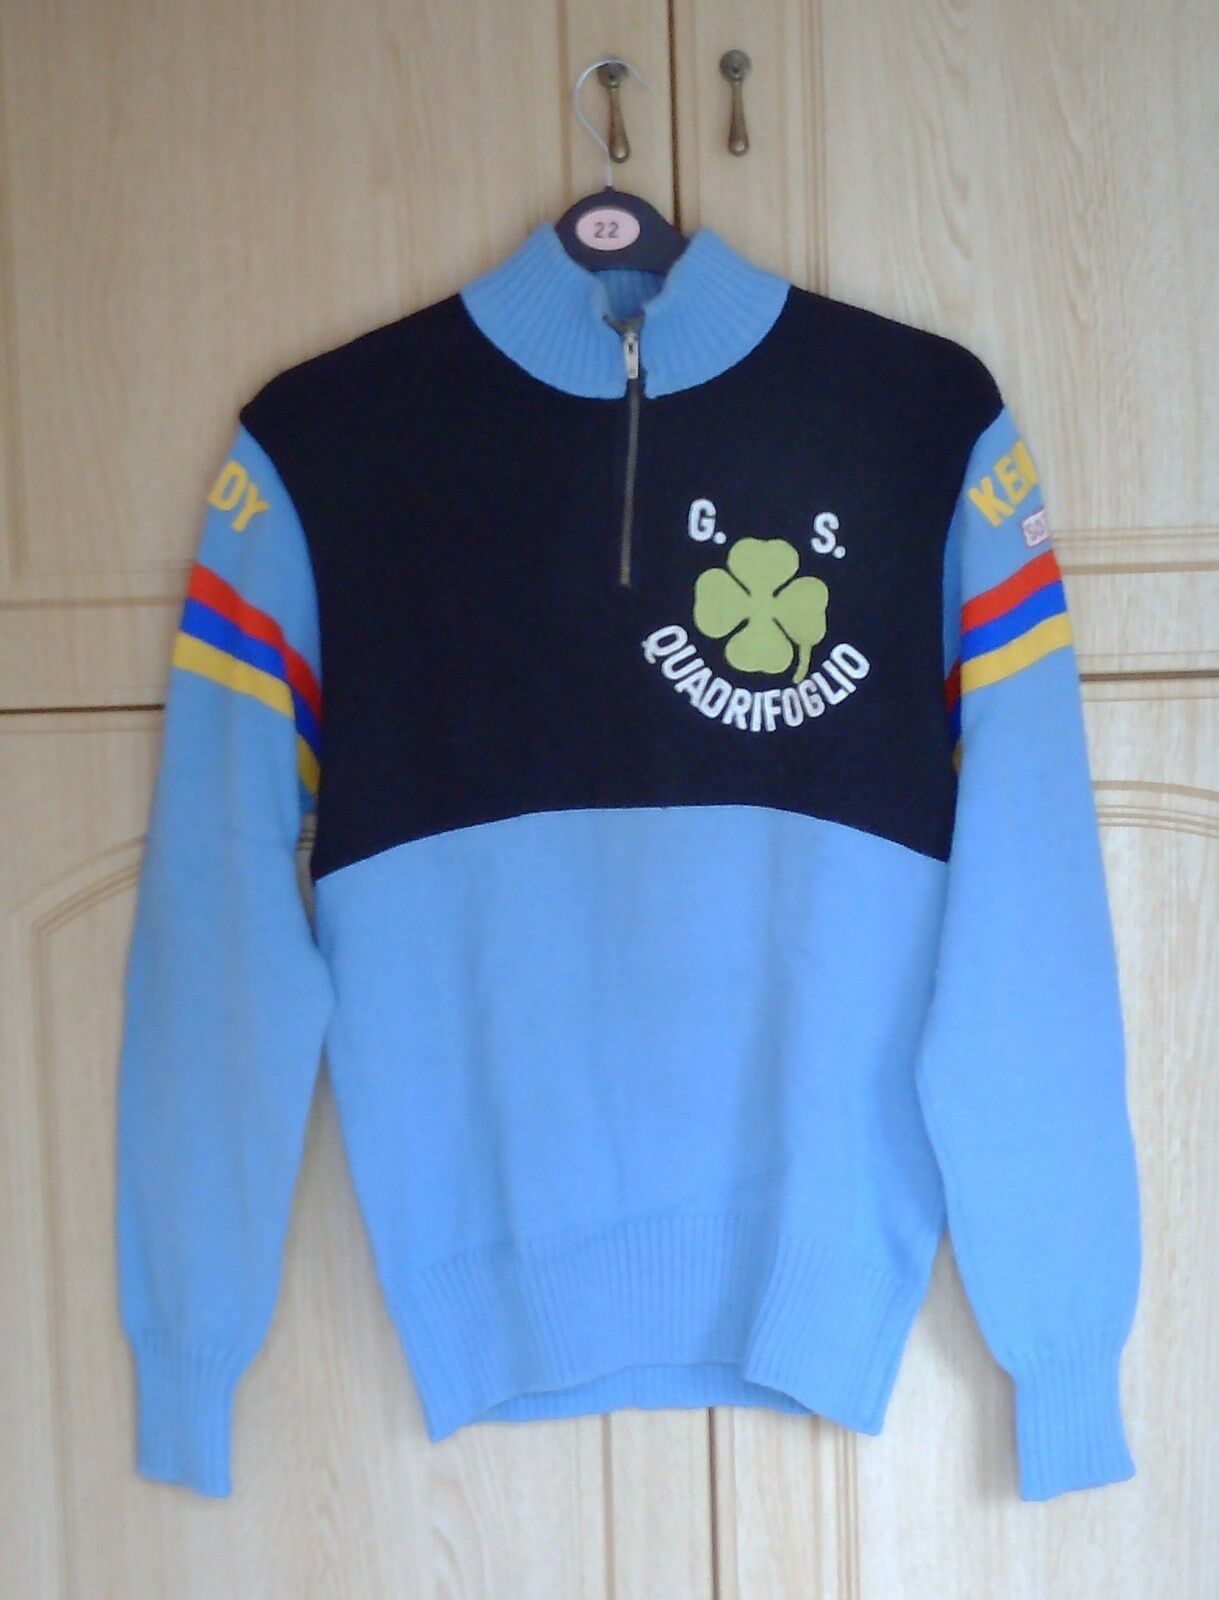 KENNEDY G.S. QUADRIFOGLIO WOOL CYCLING JERSEY,TORTELLI OF ITALY